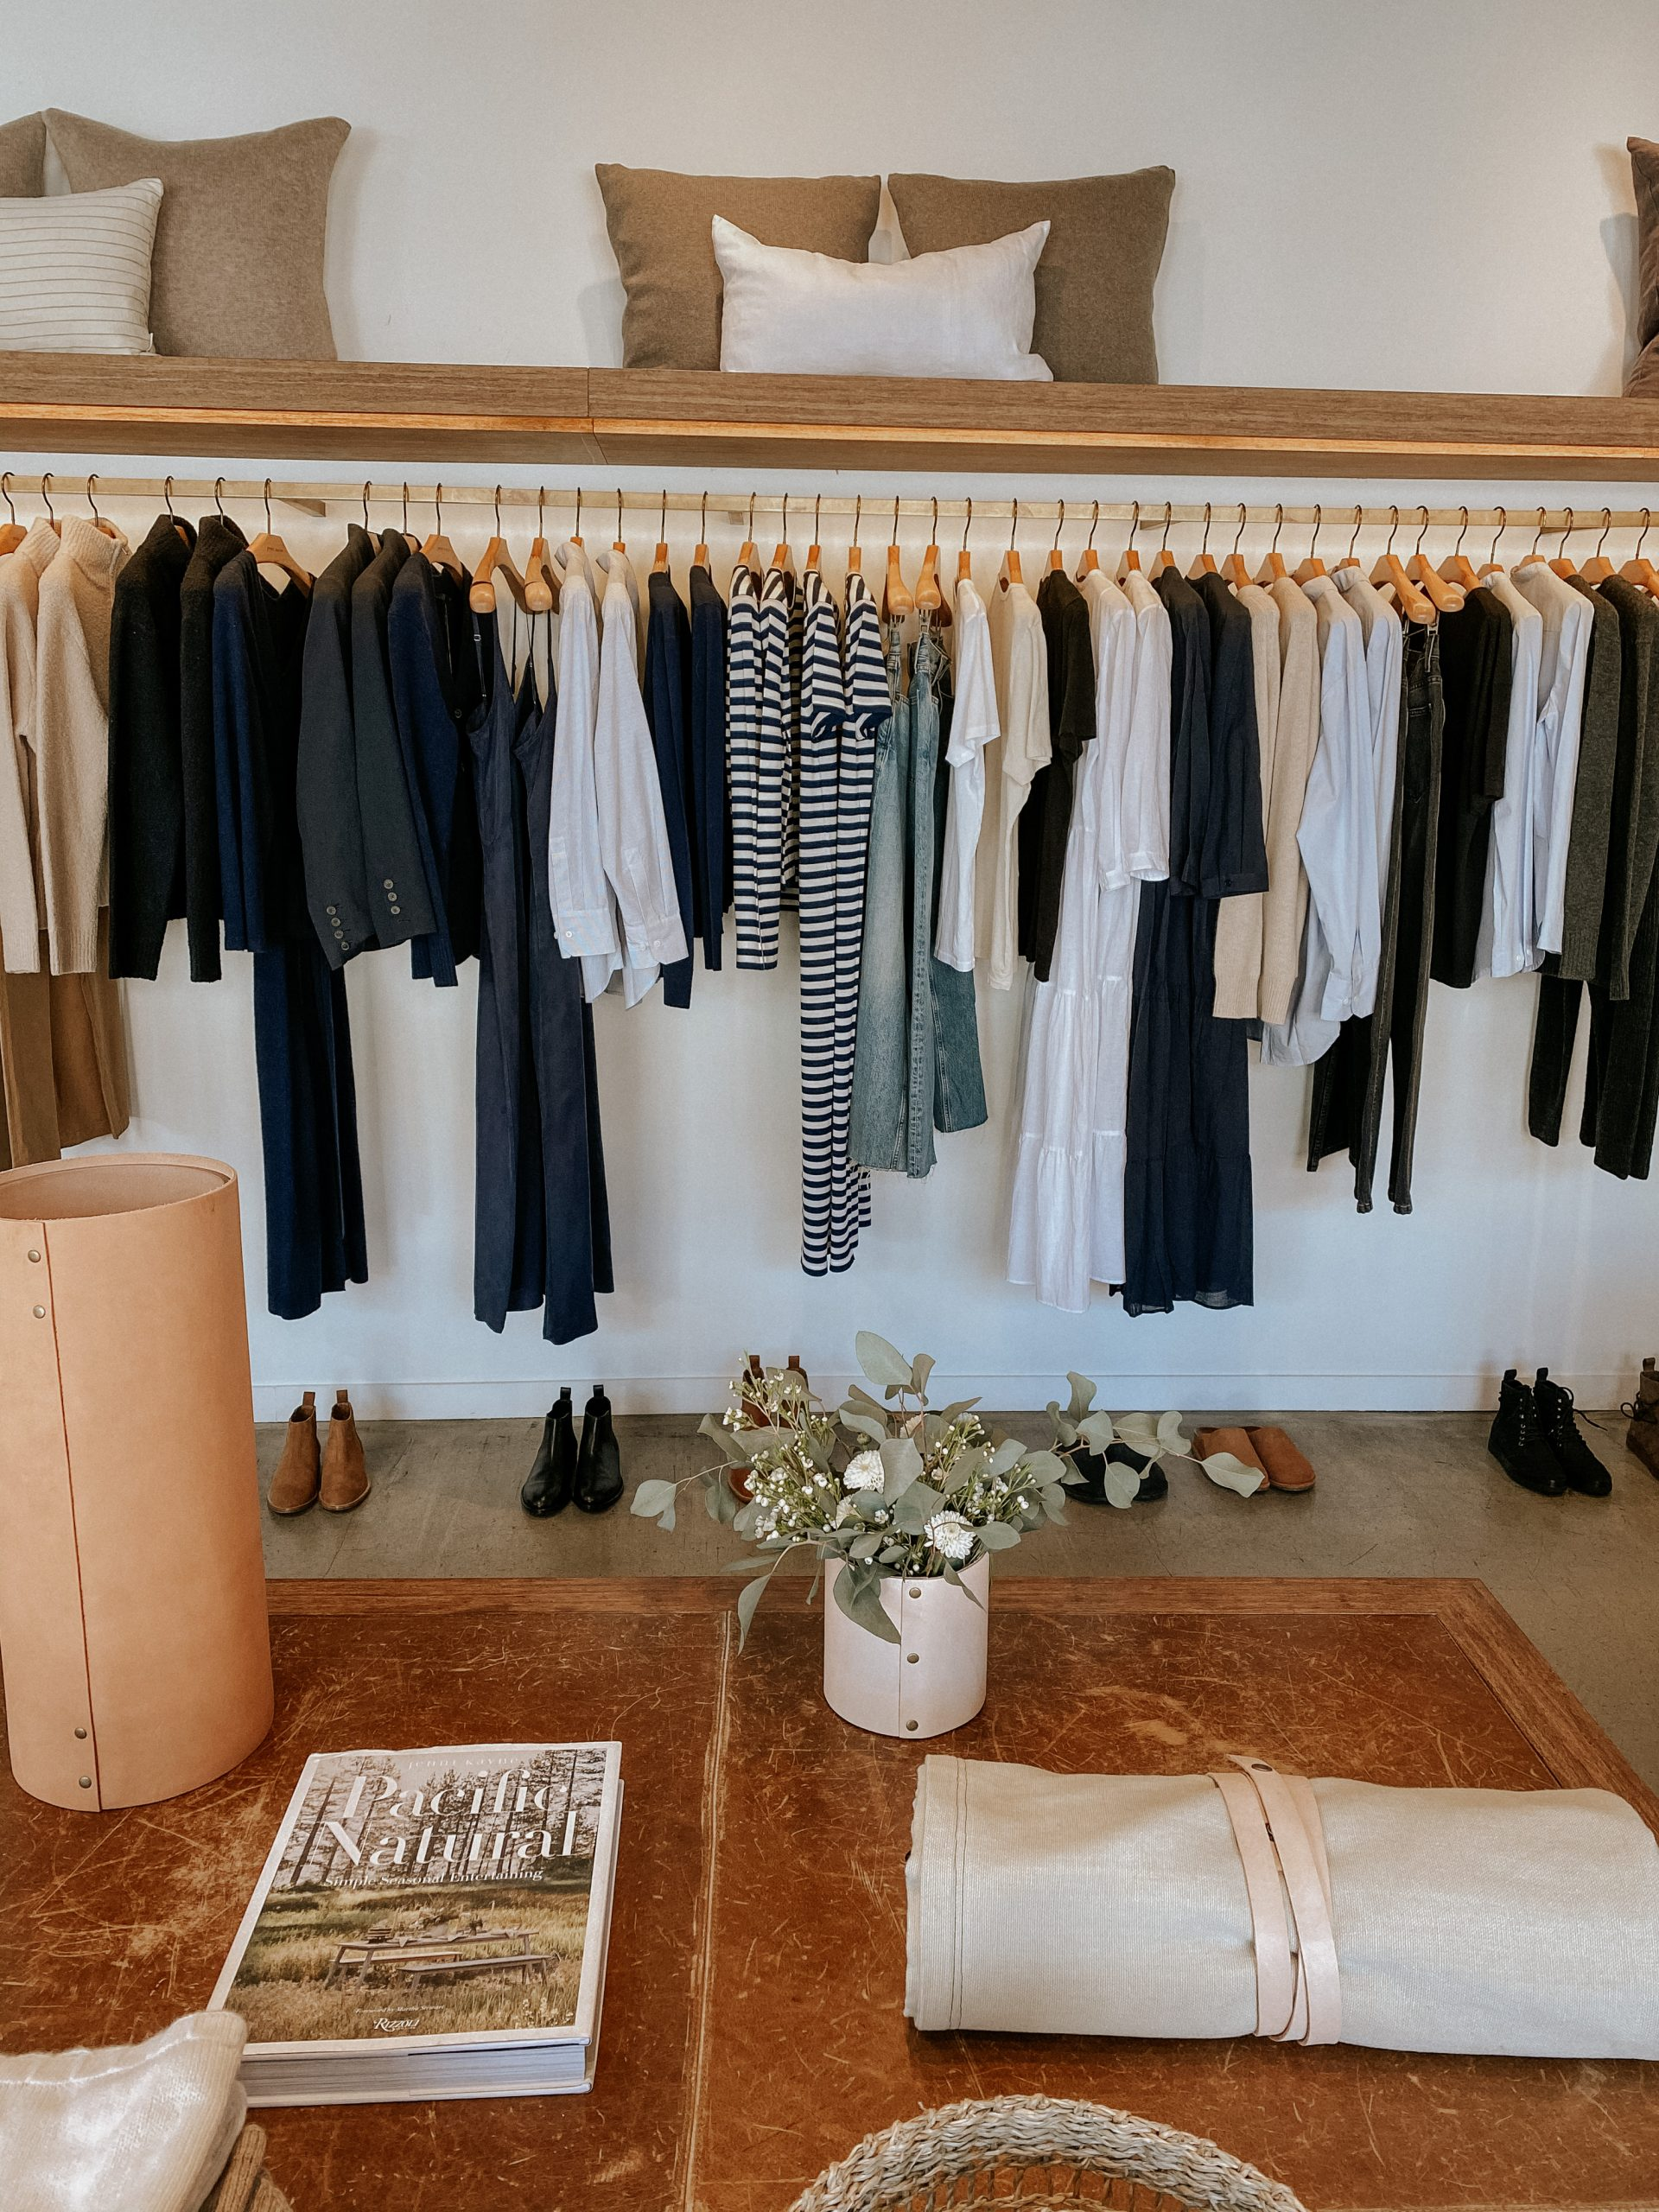 Jenni Kayne store at the Brentwood Country Mart